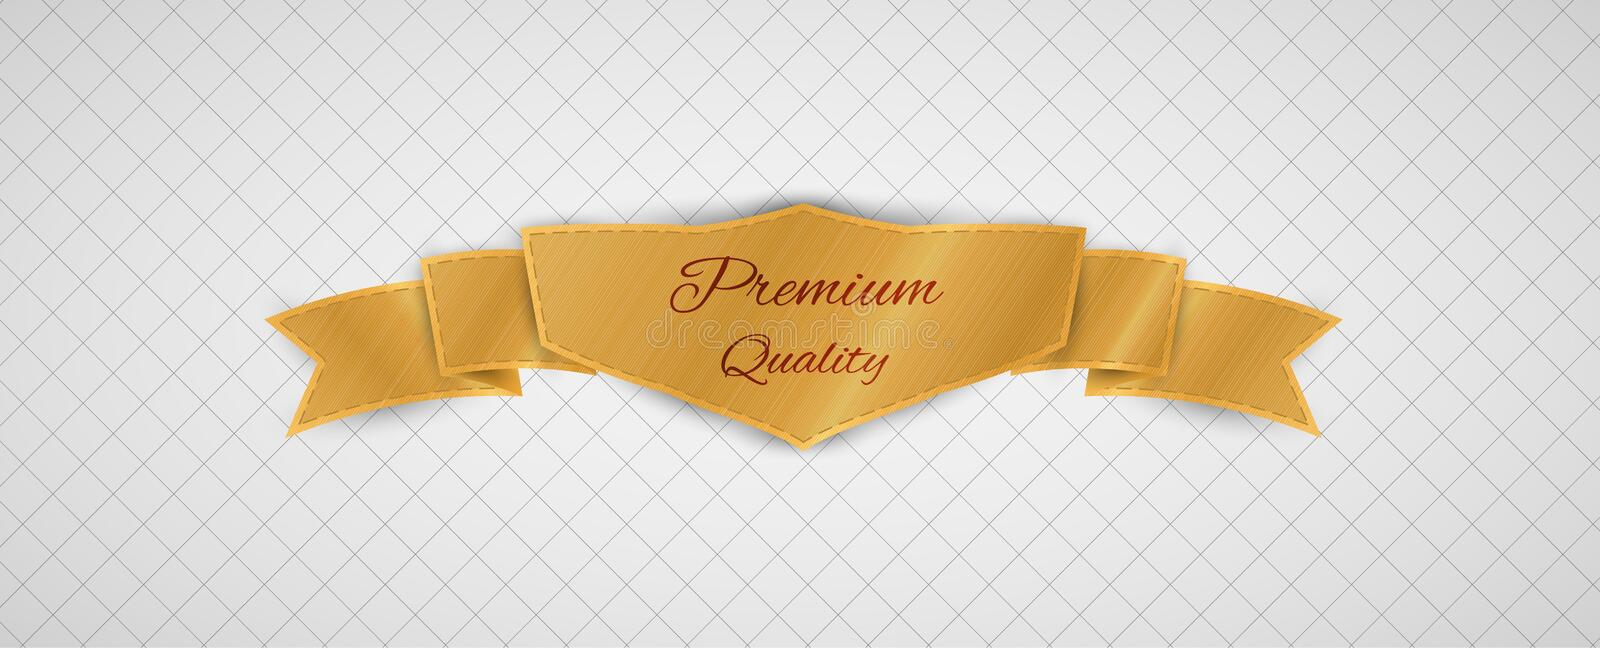 Gold quality label. Gold premium quality label on gray graph paper royalty free illustration